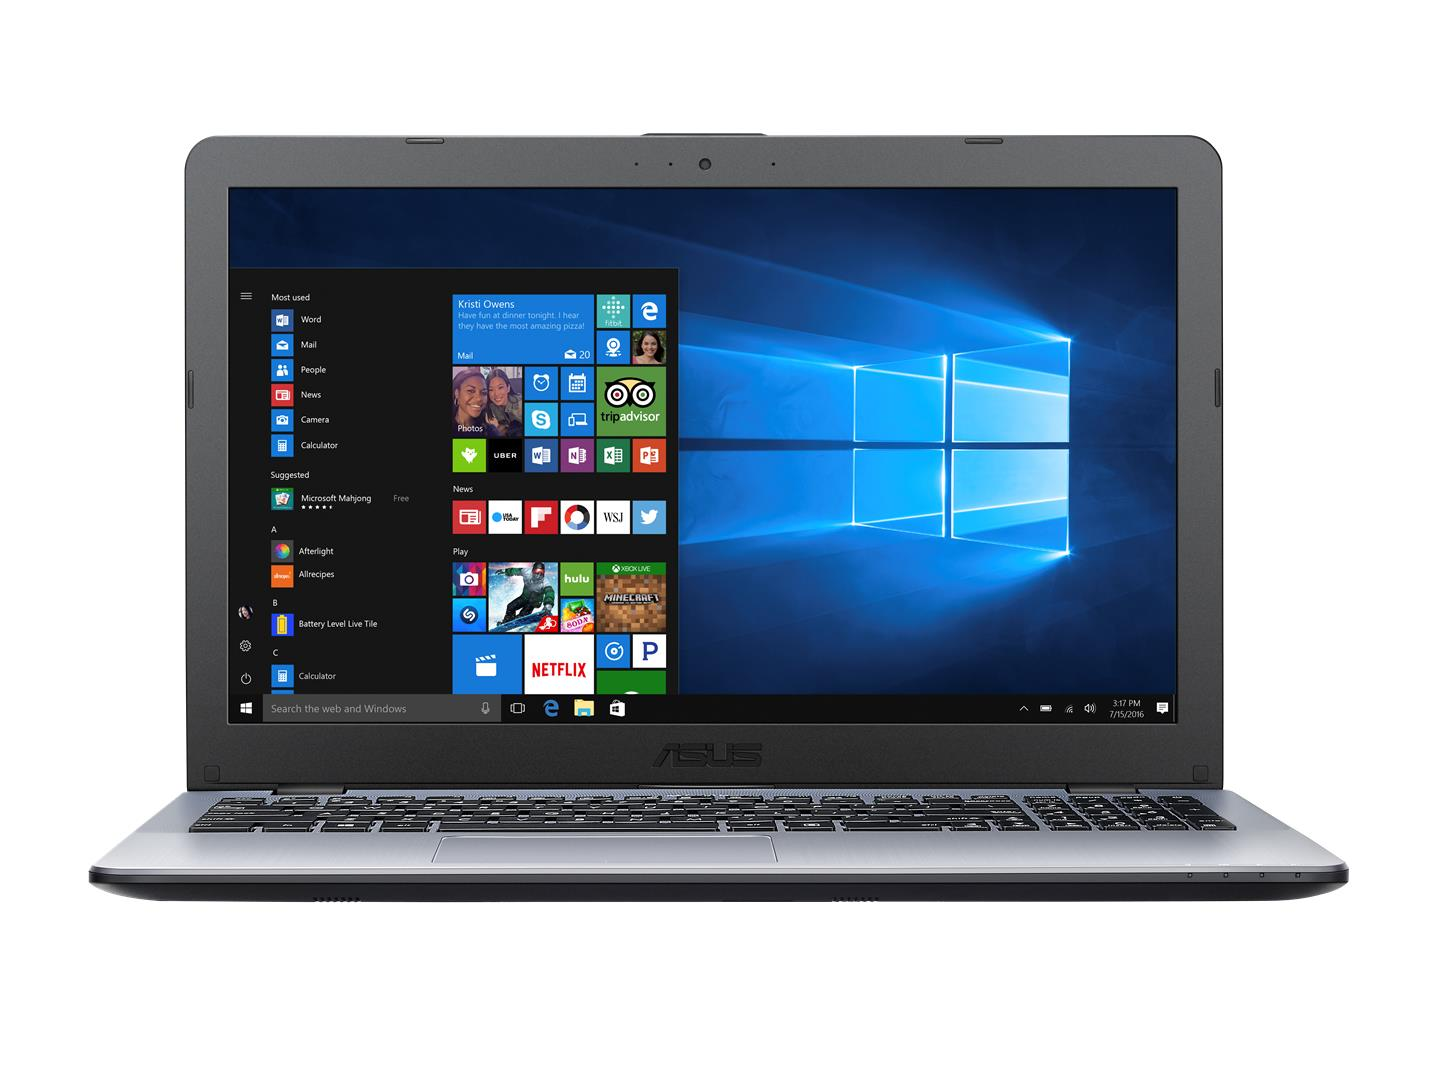 "ASUS X542UF-DM206T i7-8550U/8GB/256GB SSD/DVDRW/GeForce MX130 2GB/15,6"" FHD matný/W10 Home/Silver"